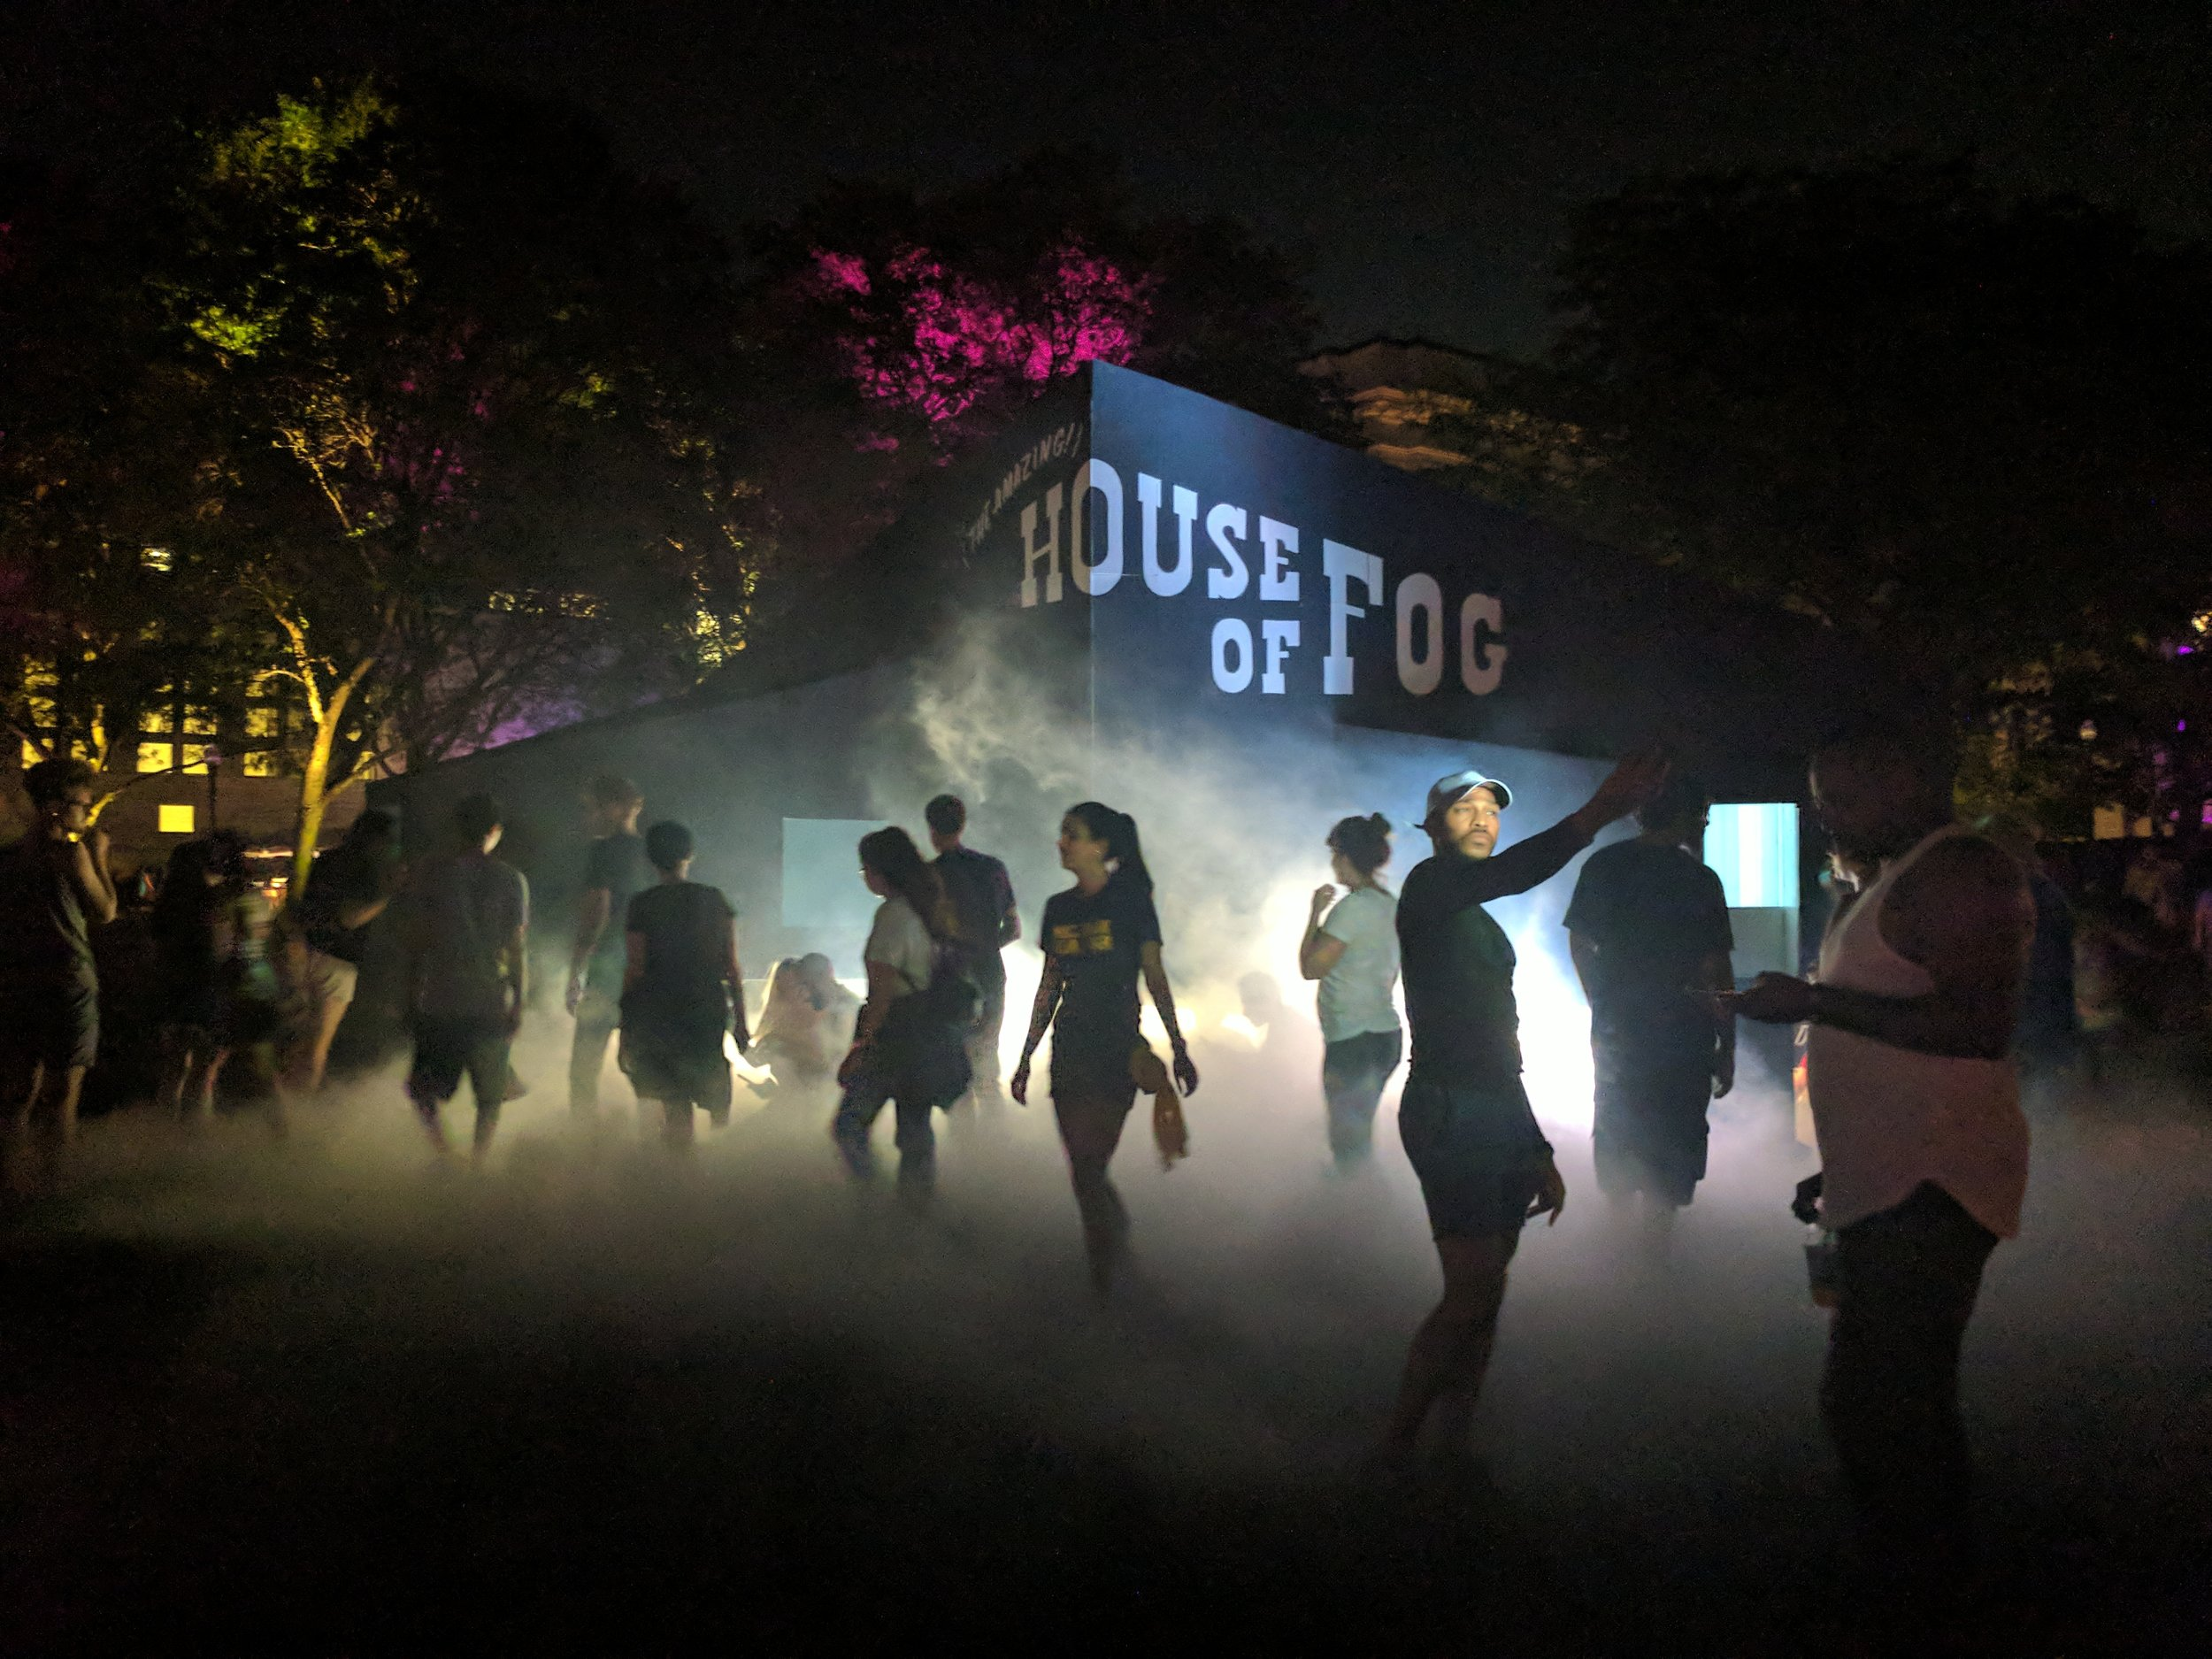 THE {AMAZING} HOUSE OF FOG: IL CINEMA NEBULOSO  @ DLectricity 2017